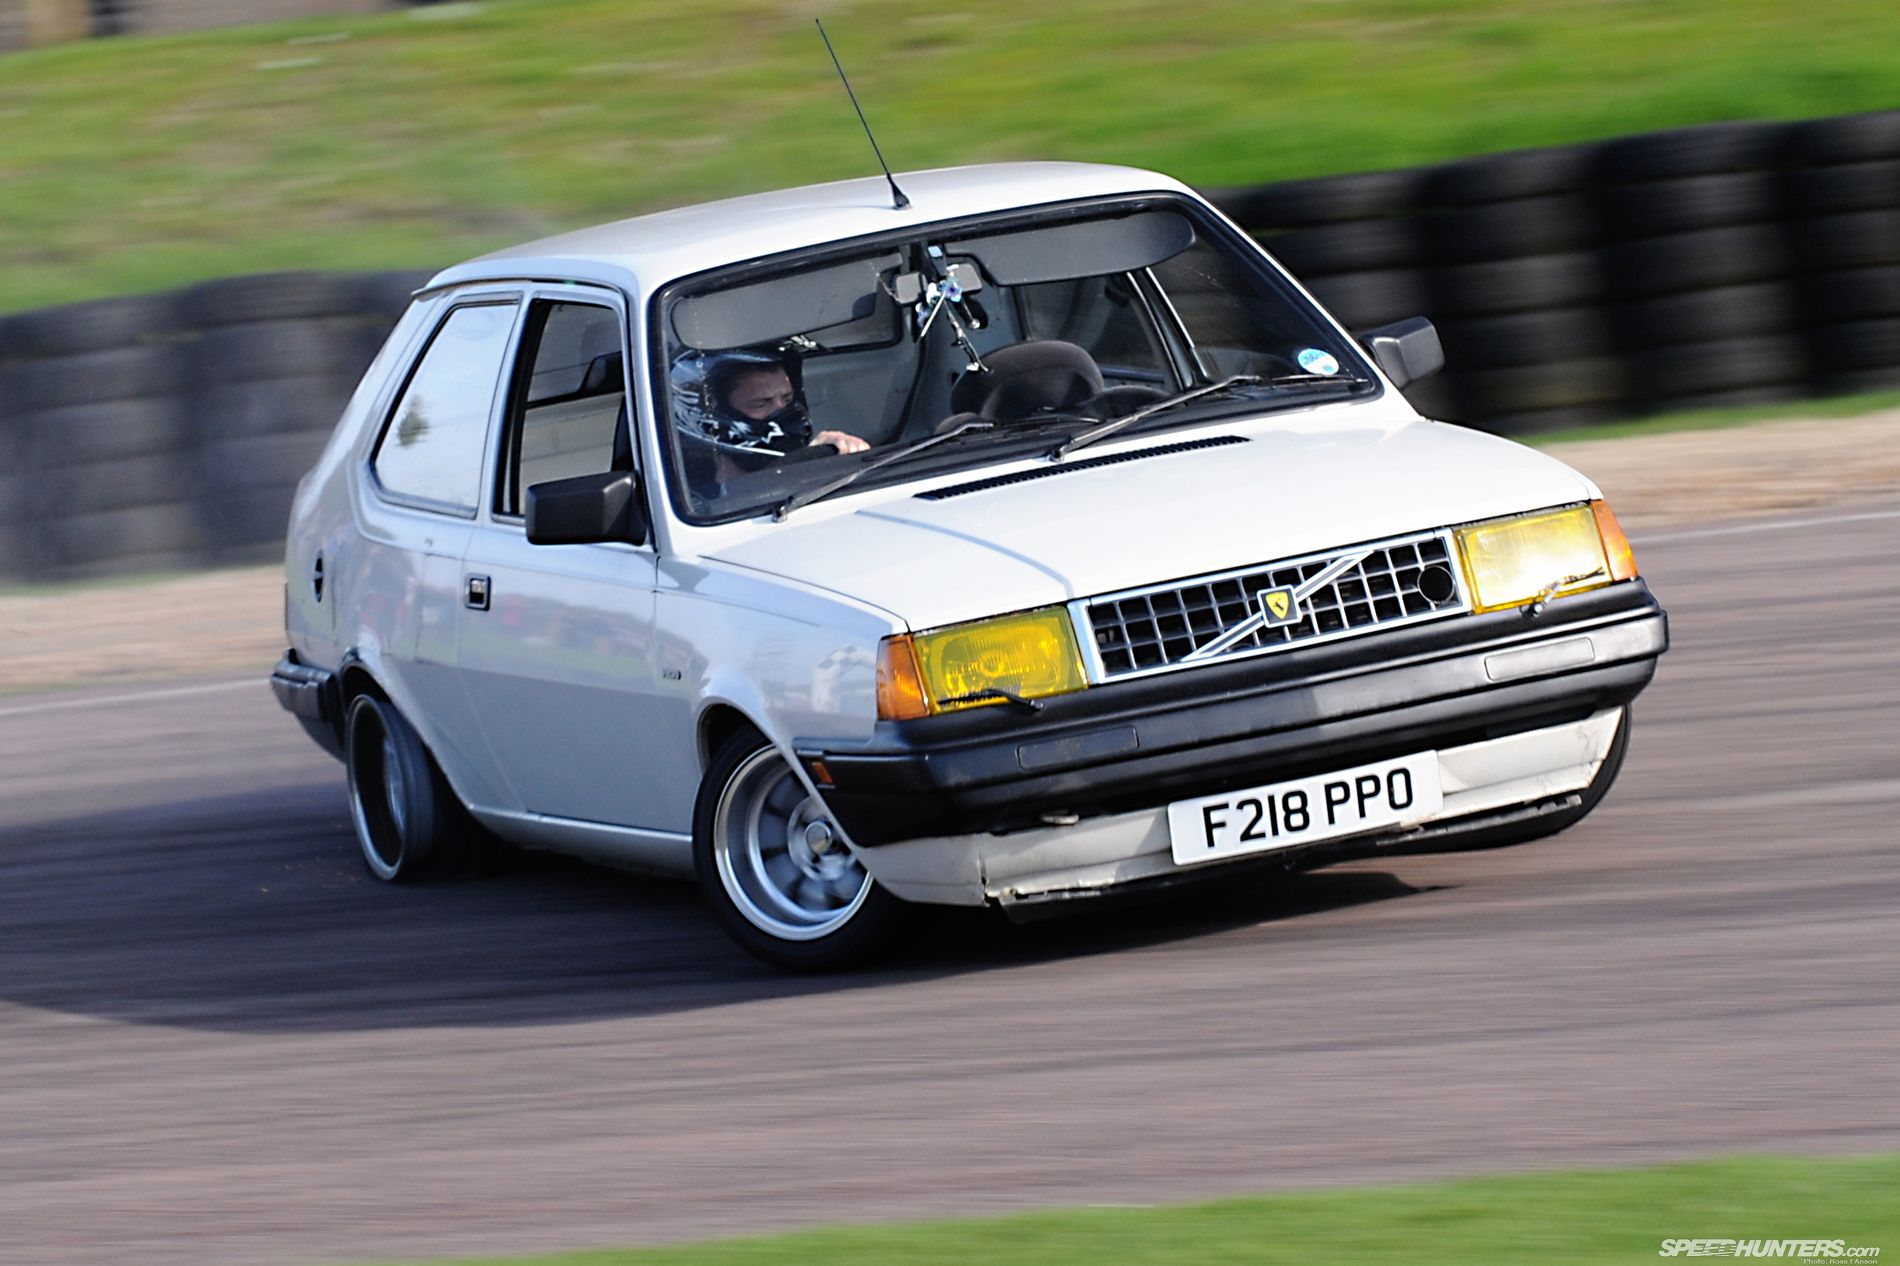 Cosworth Powered Drift Cars Pinterest Volvo Cars And Volvo